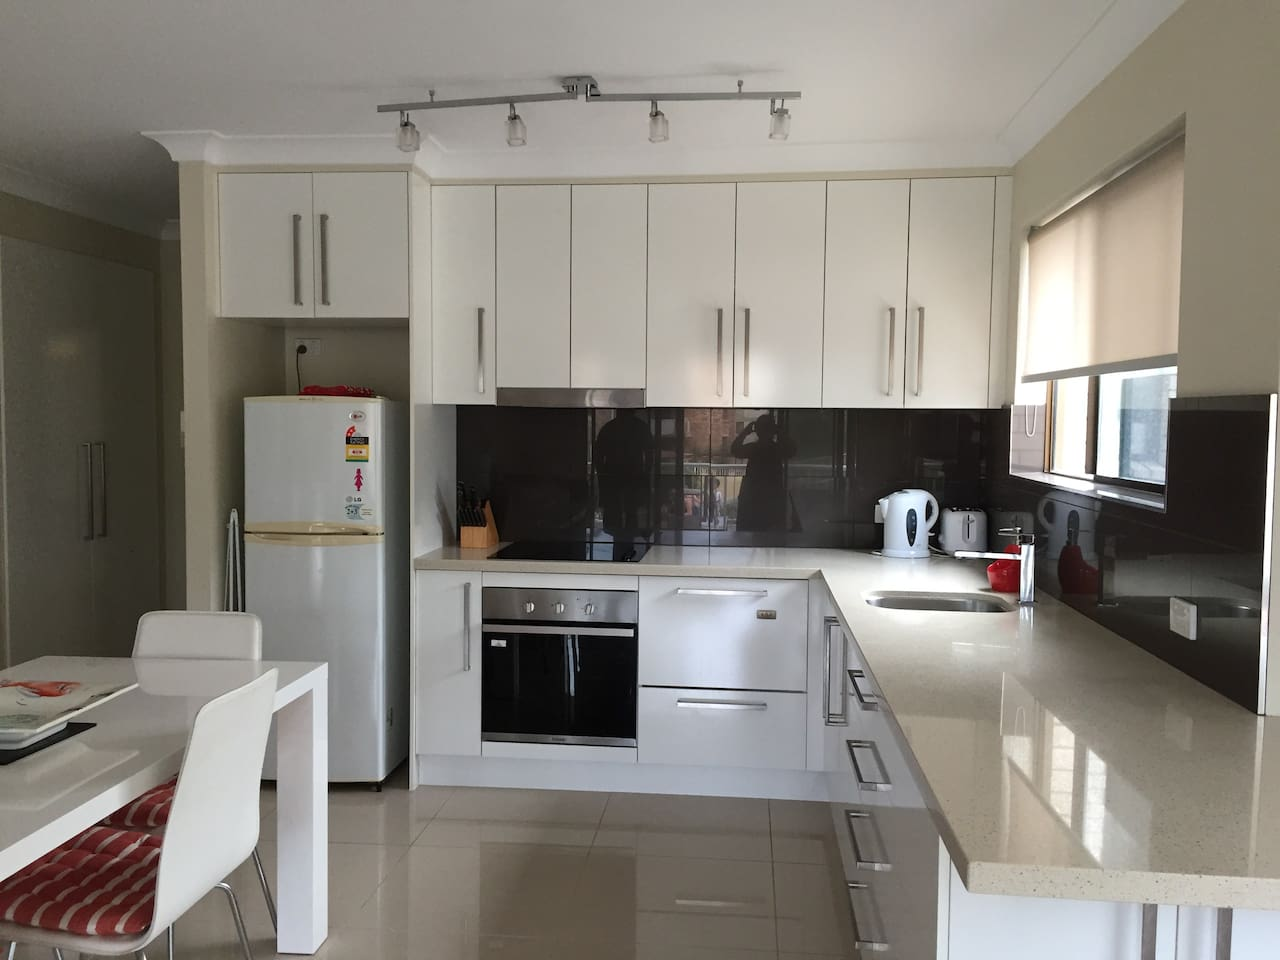 modern kitchen with all amenities